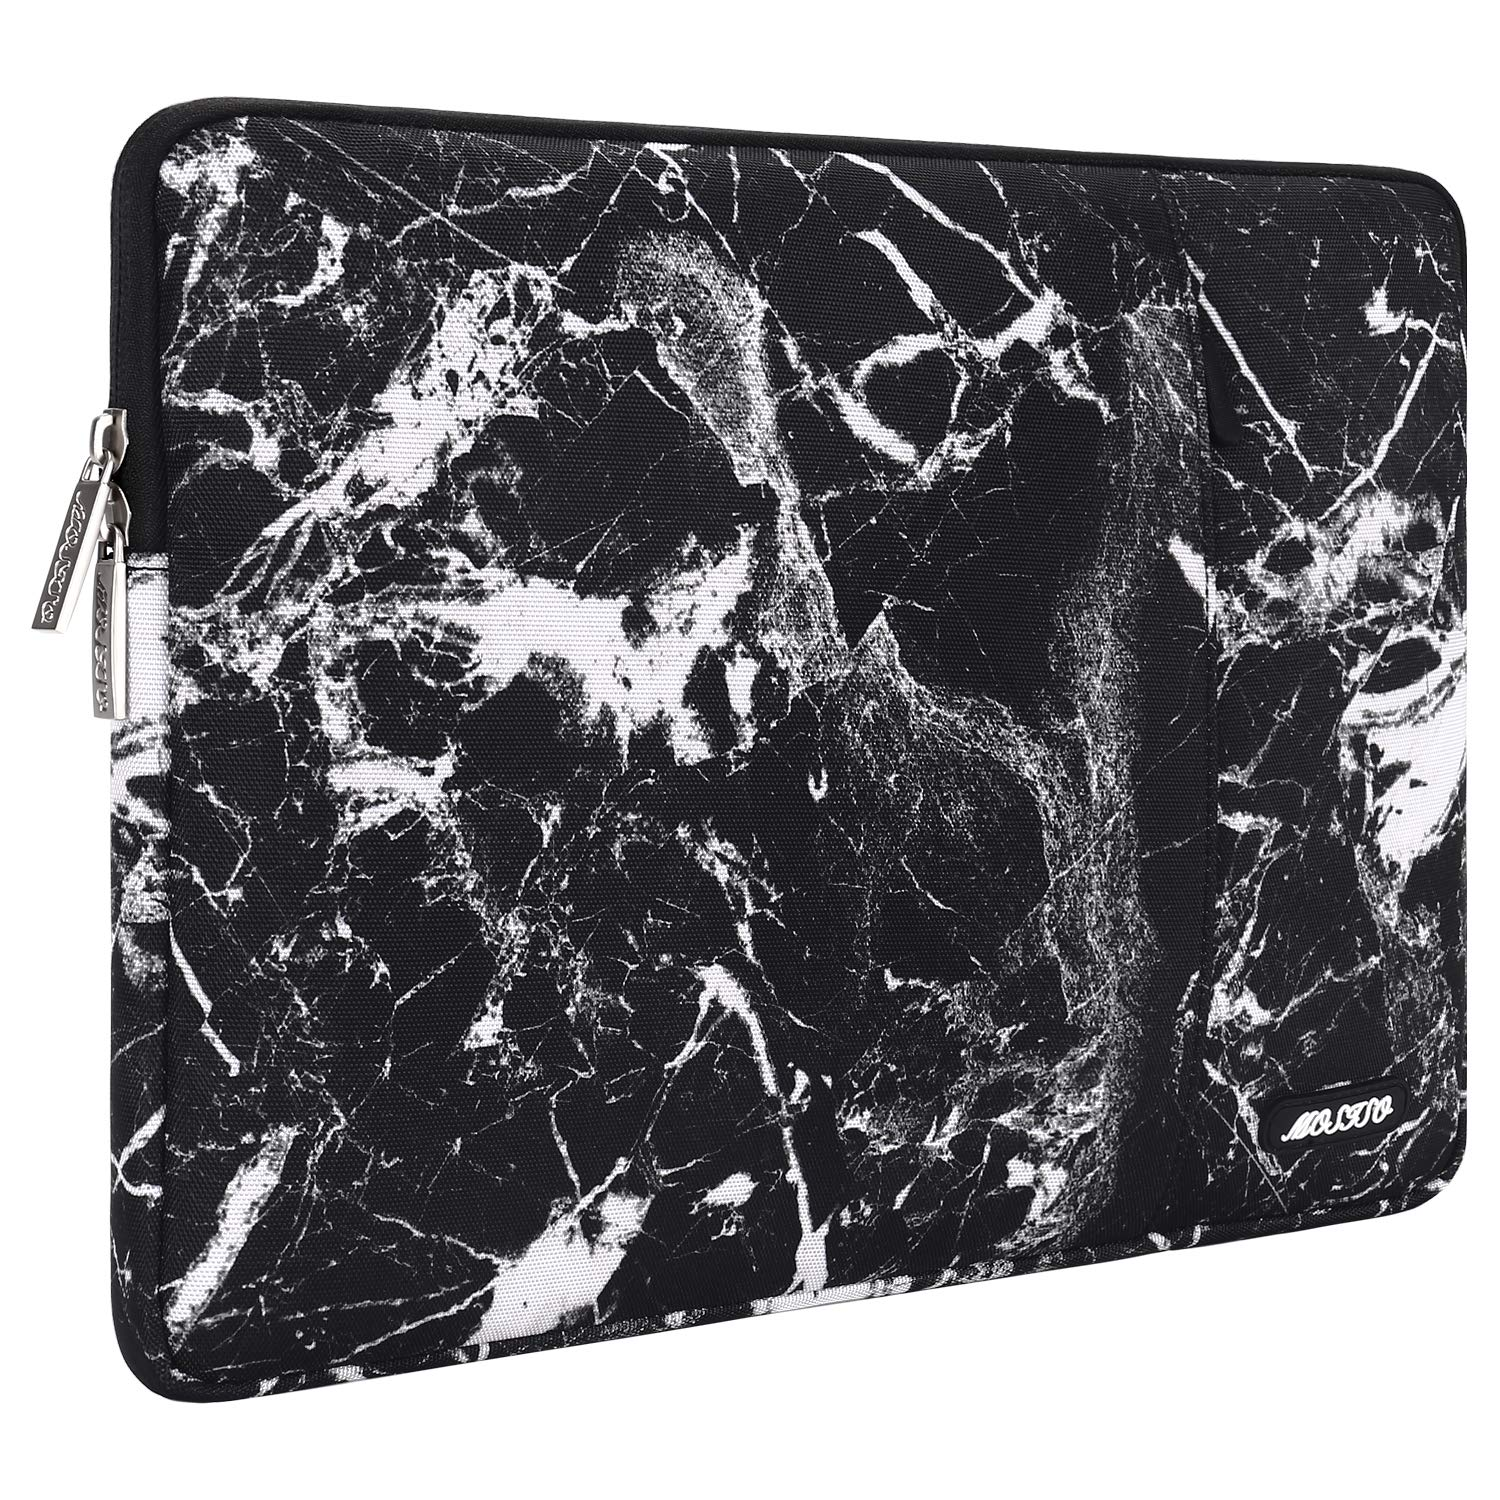 MOSISO Laptop Sleeve Bag Compatible 13-13.3 Inch MacBook Pro, MacBook Air, Notebook Computer, Vertical Style Water Repellent Polyester Protective Case Cover with Pocket, Black Marble by MOSISO (Image #6)